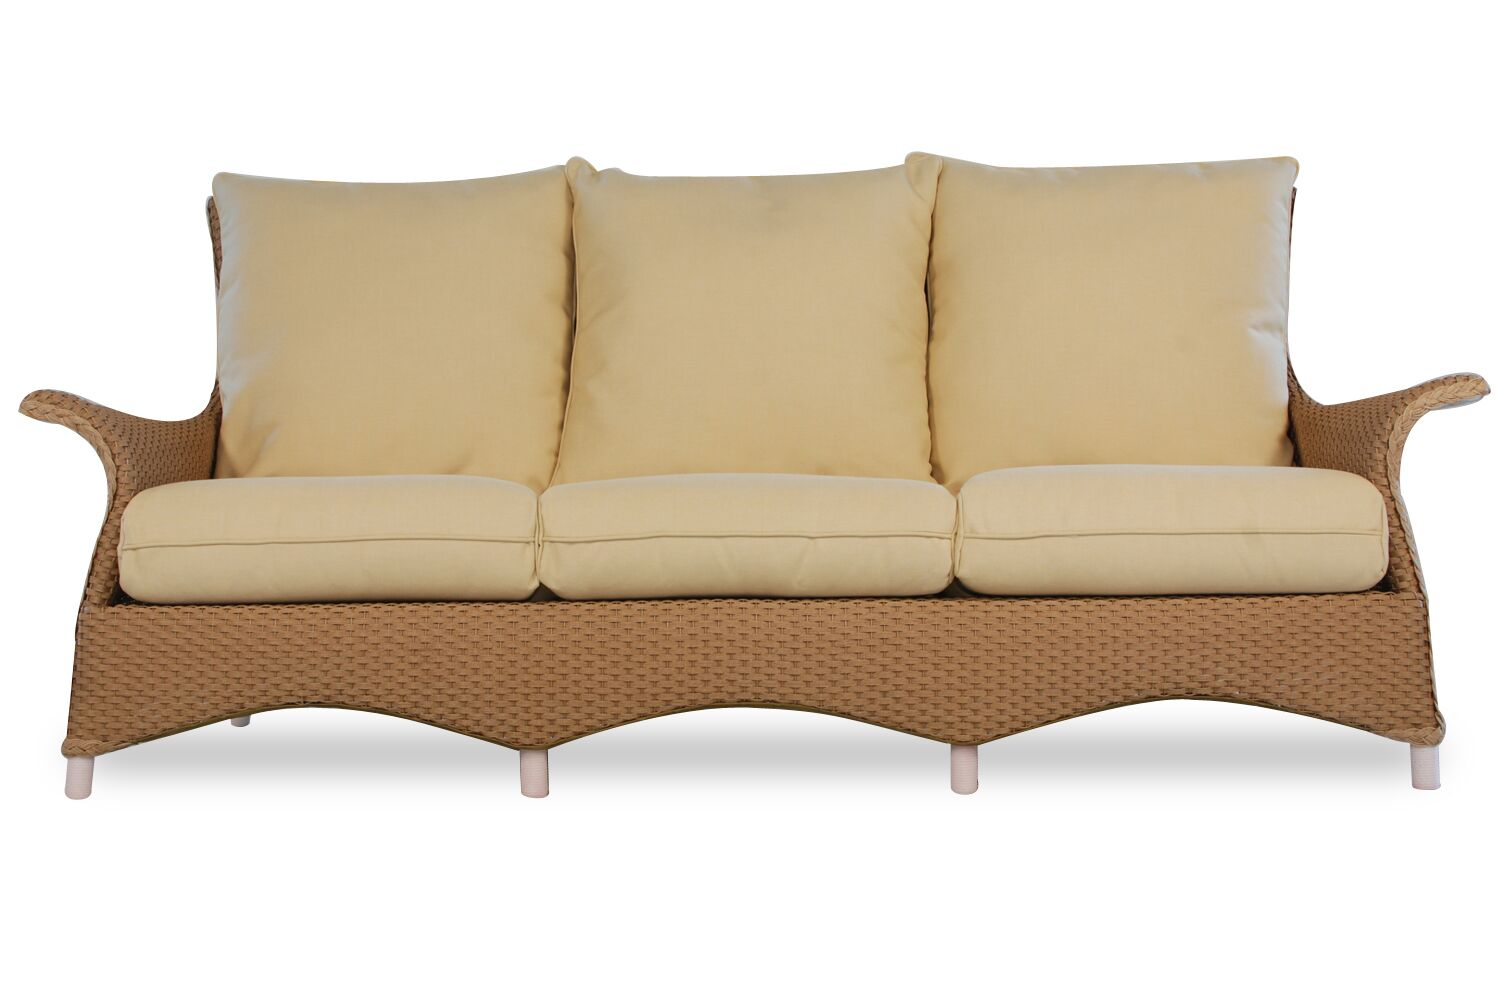 Mandalay Patio Sofa with Cushions